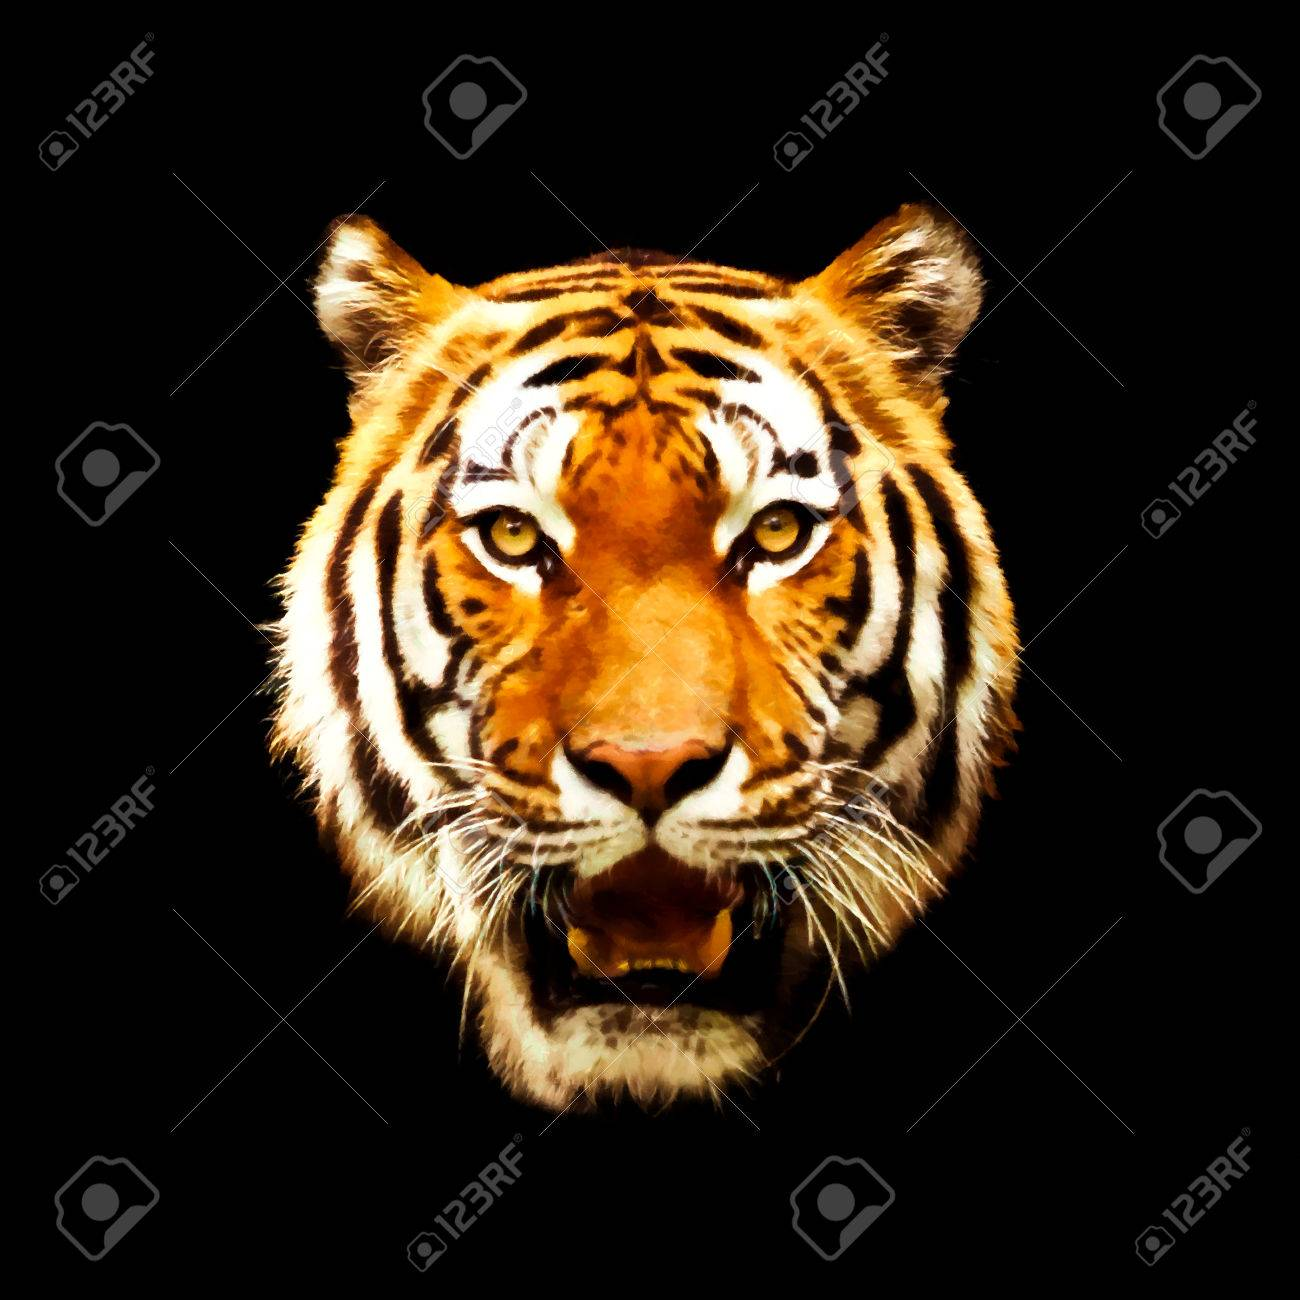 head of a tiger. illustration on black. tiger on black background